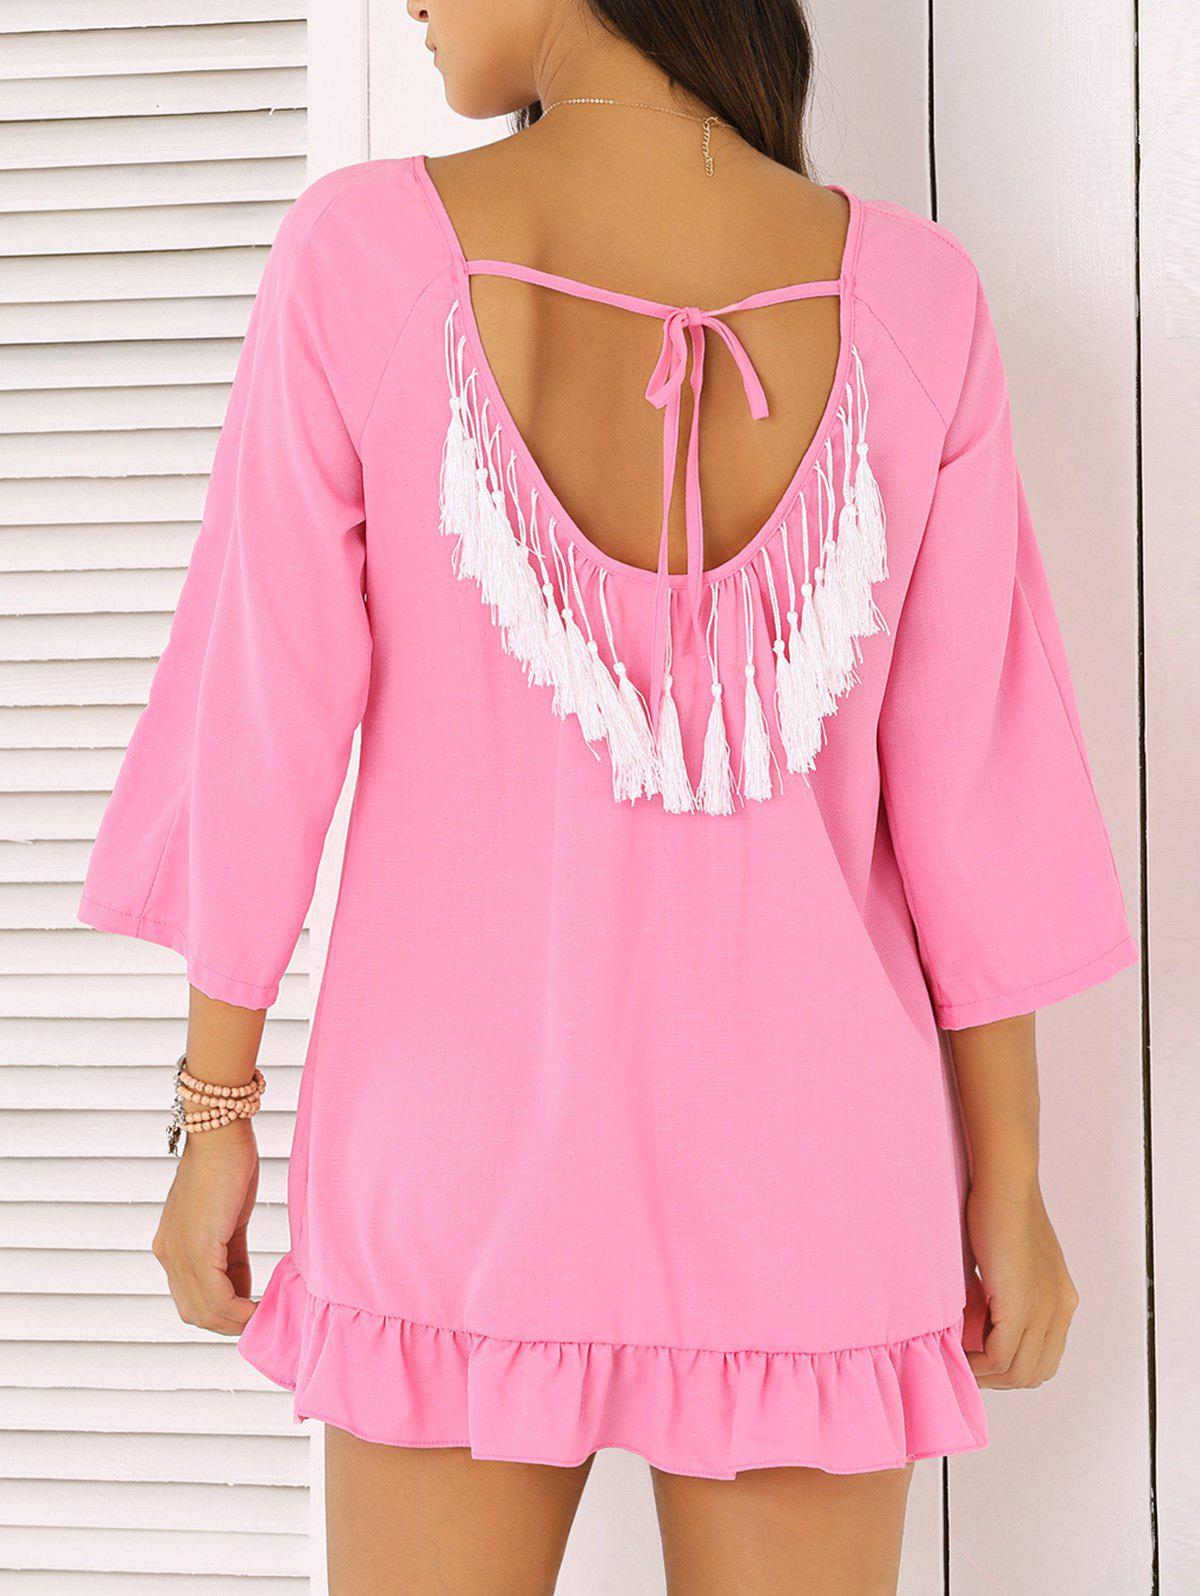 Chic 3/4 Sleeve Fringed Backless Women's Dress - ROSE RED XL